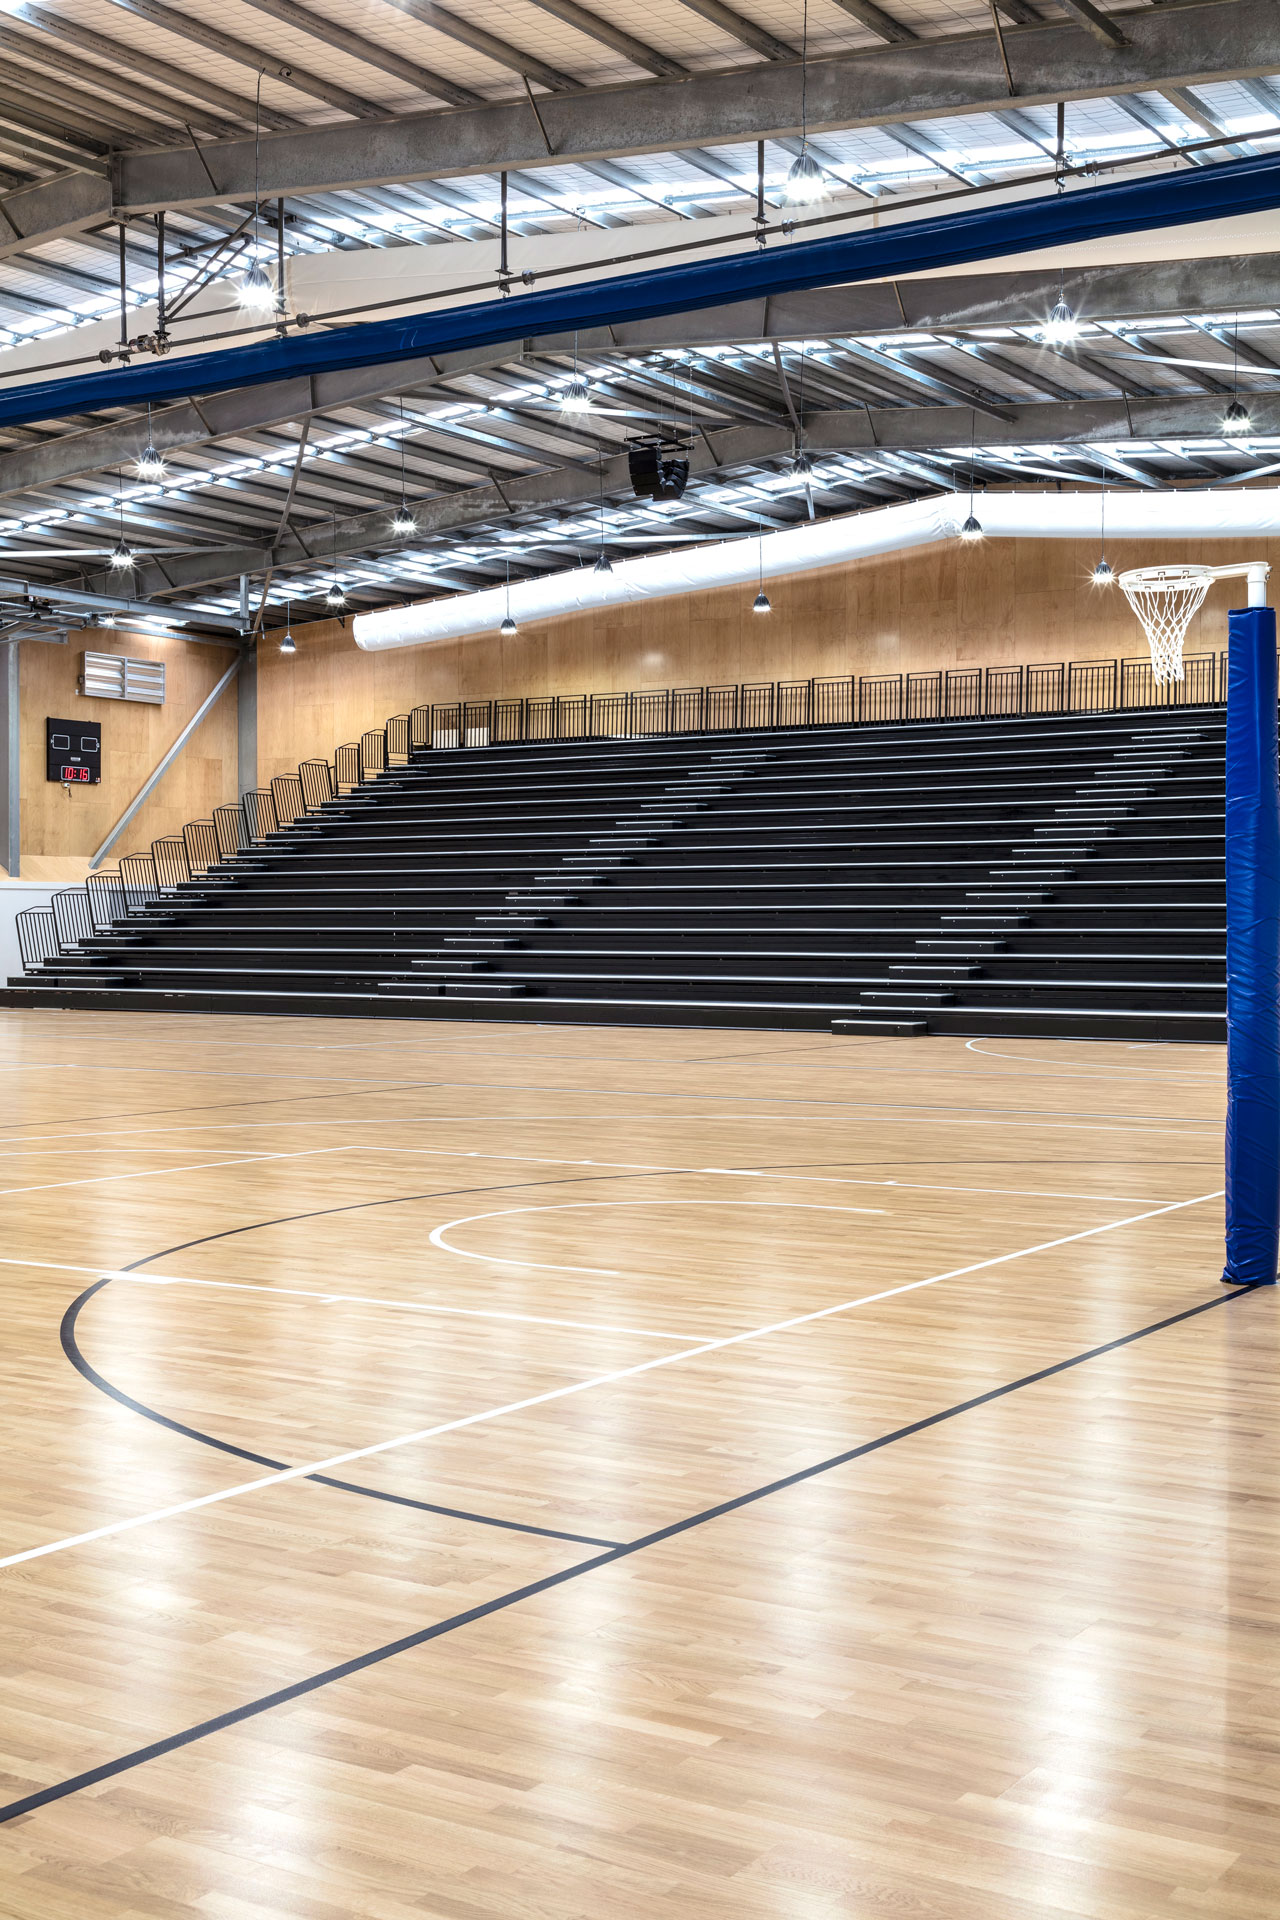 Morayfield Sports and Event Centre